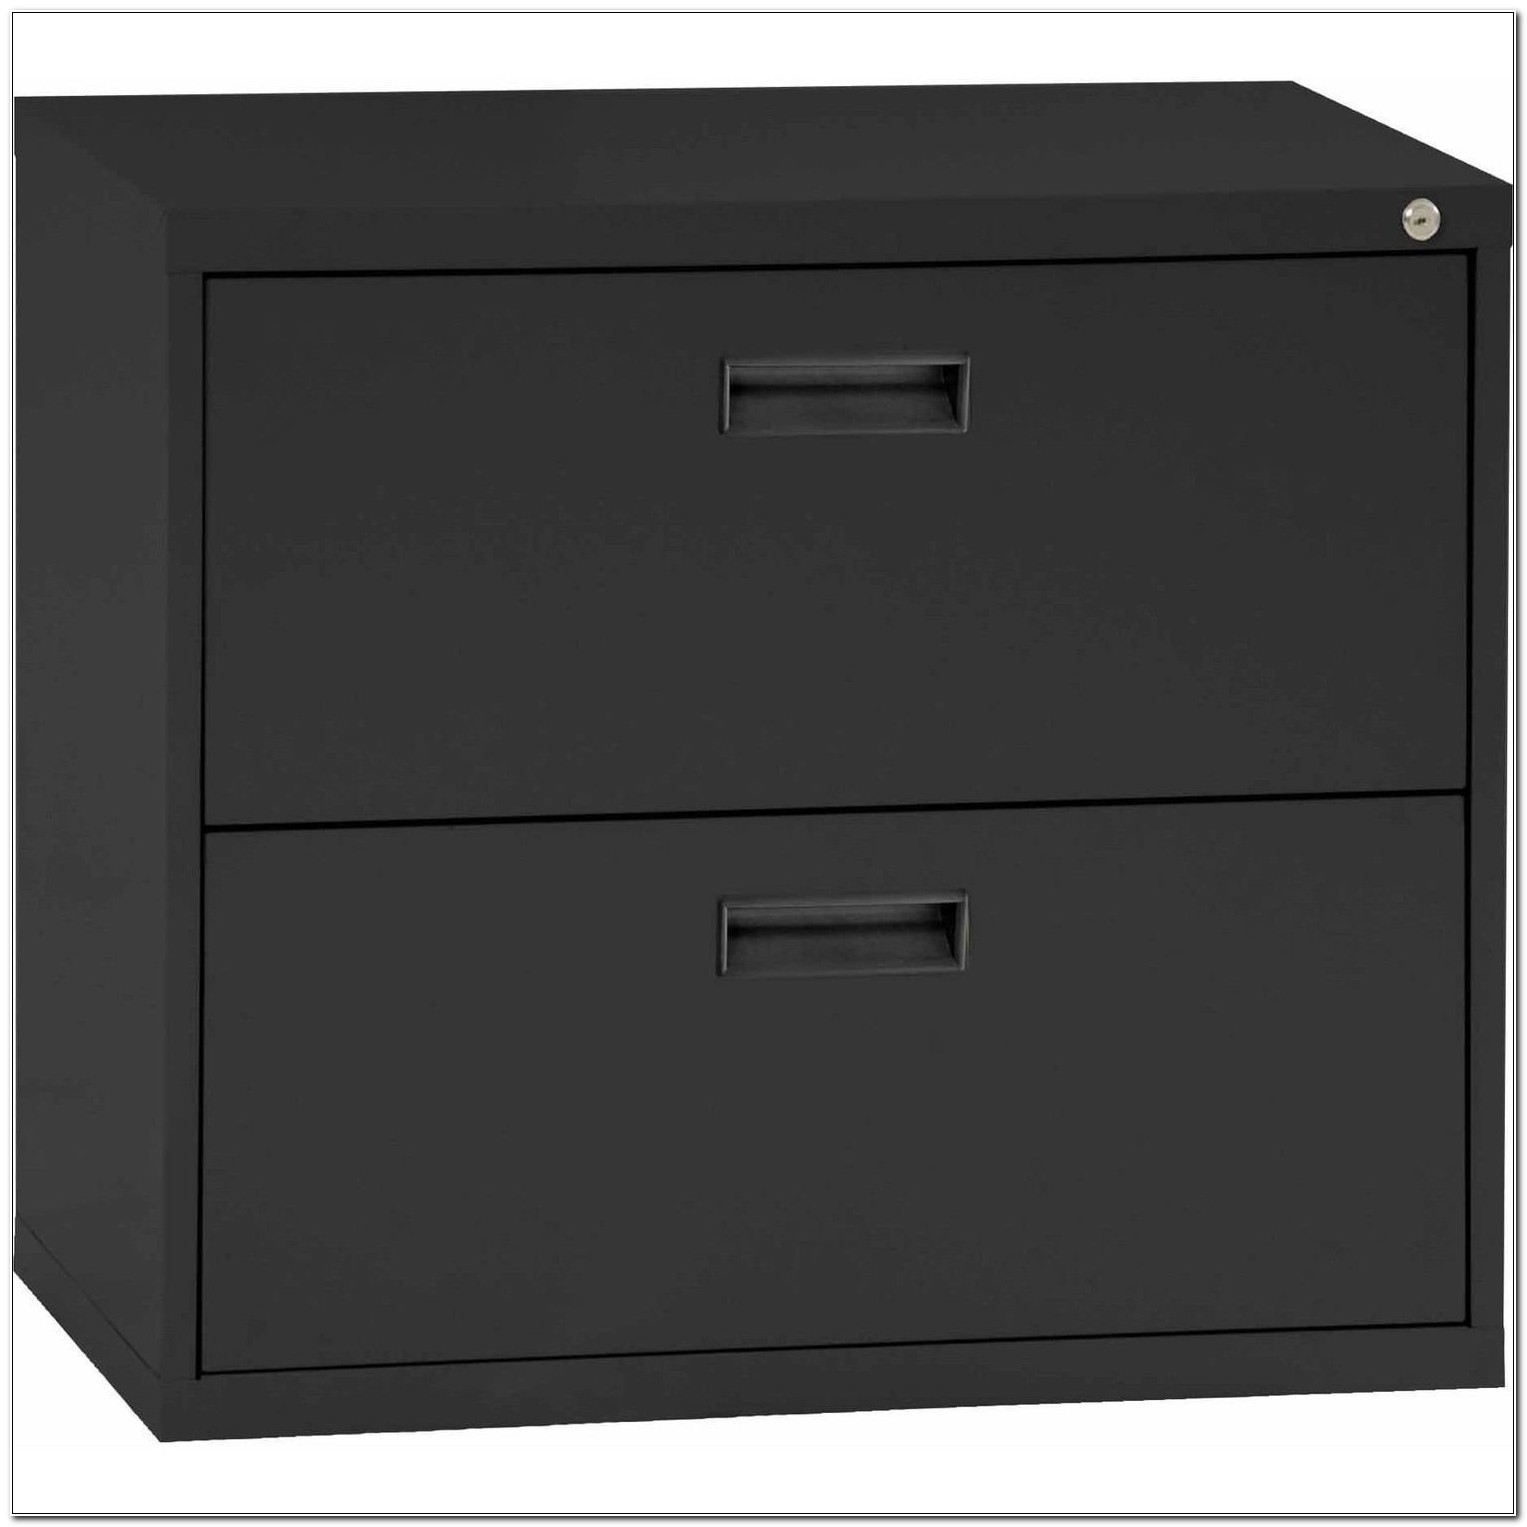 Black Lateral Filing Cabinet 2 Drawer